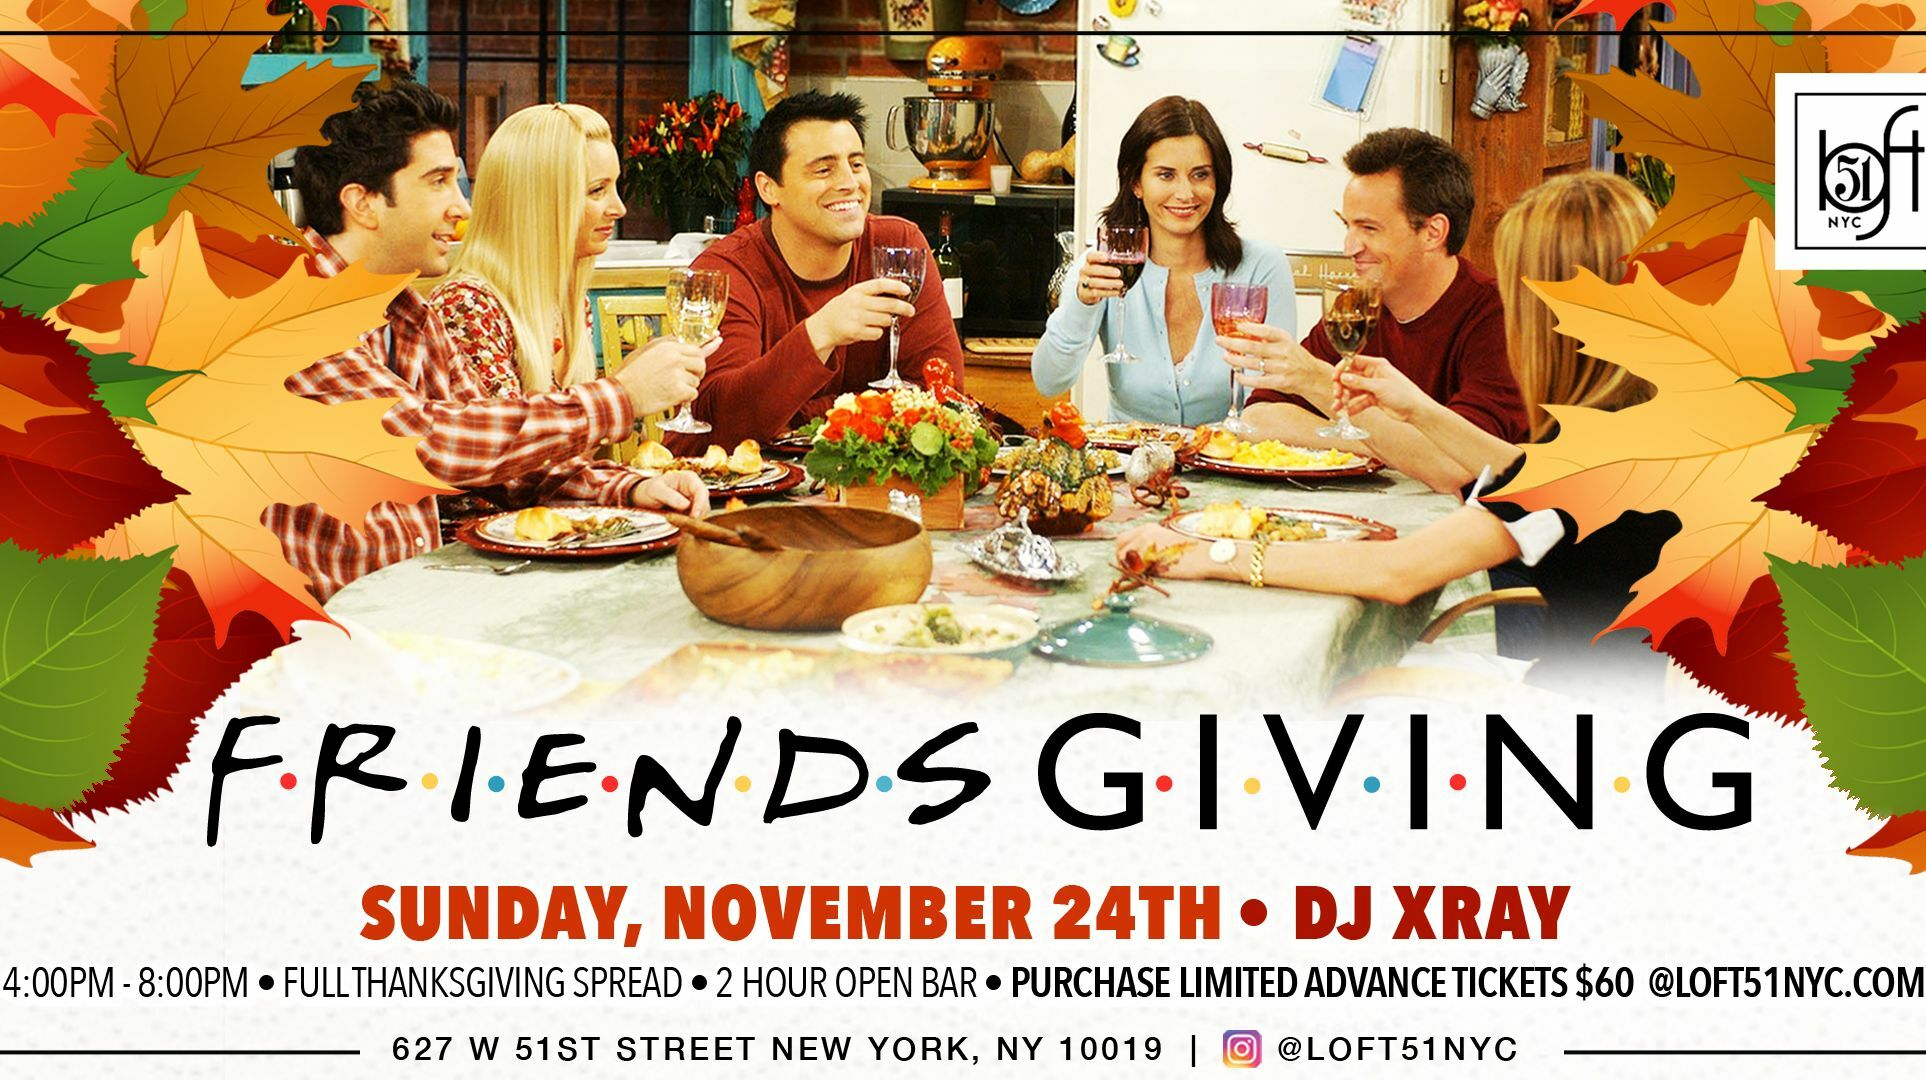 Loft 51 NYC's FriendsGiving: New Concept in Partying With Open Bar, Food & DJ